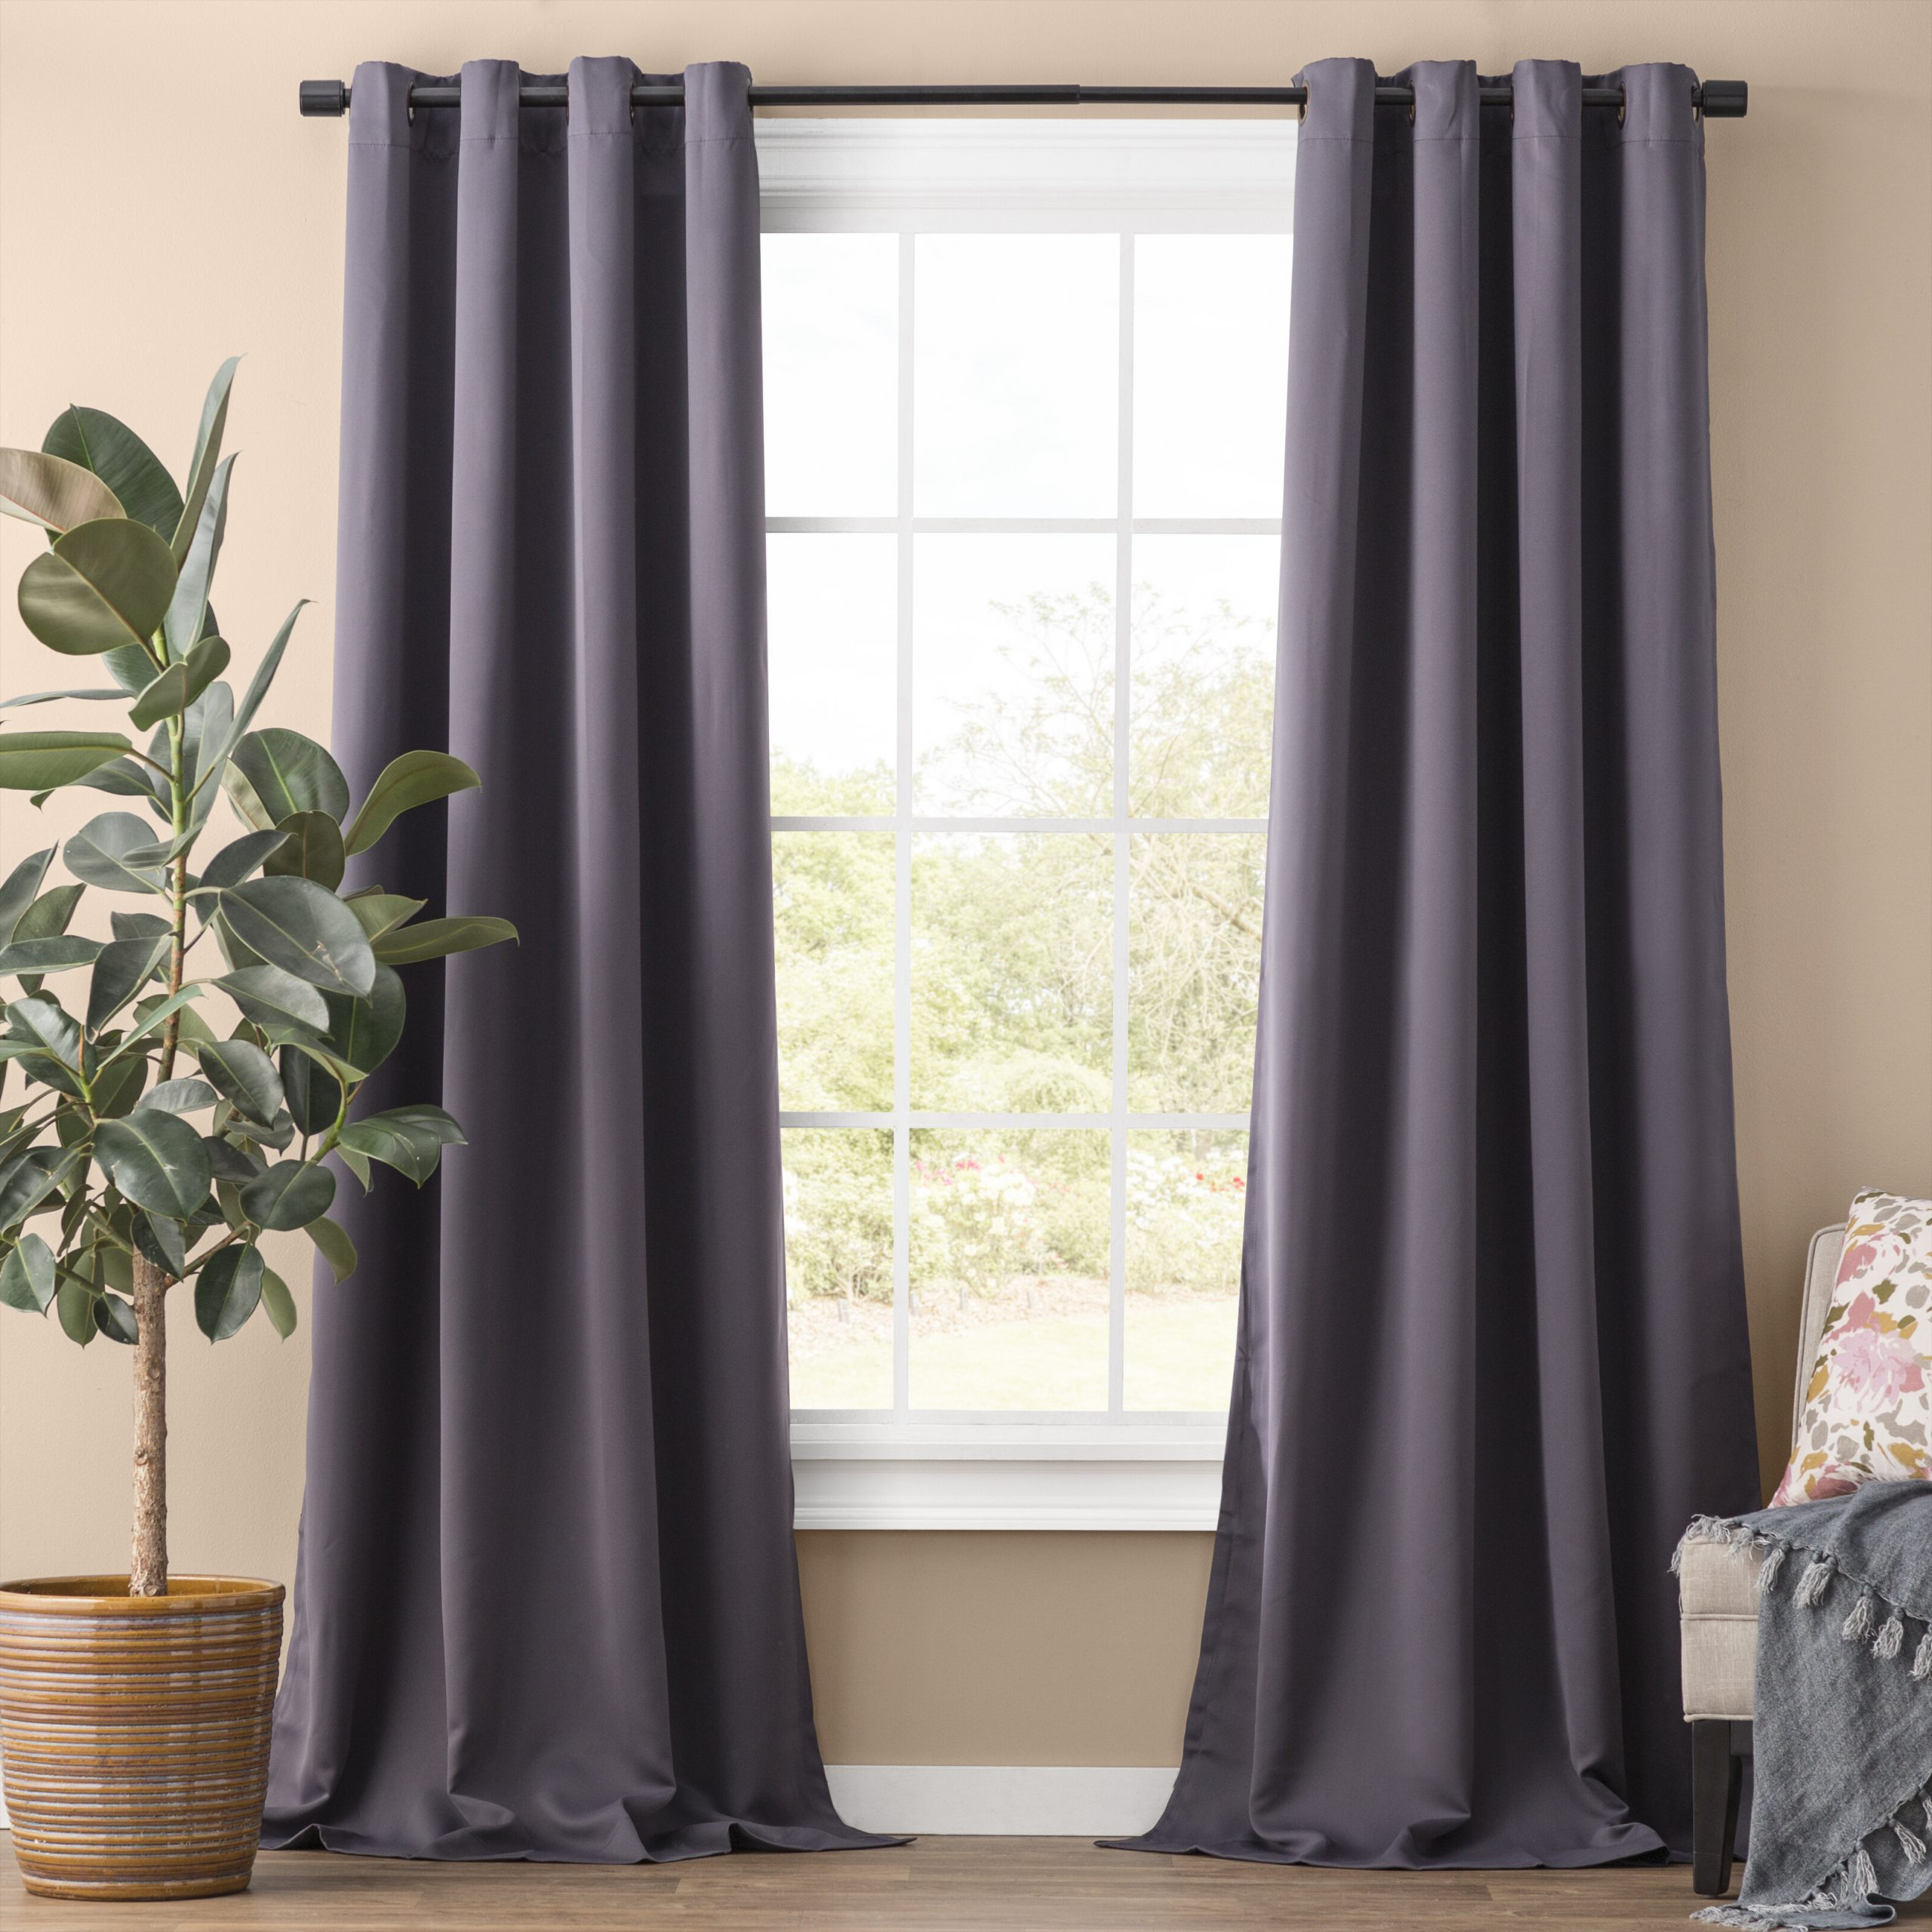 Thermal Rod Pocket Blackout Curtain Panel Pairs Throughout Famous Solid Blackout Thermal Grommet Curtain Panels & Reviews (View 13 of 20)